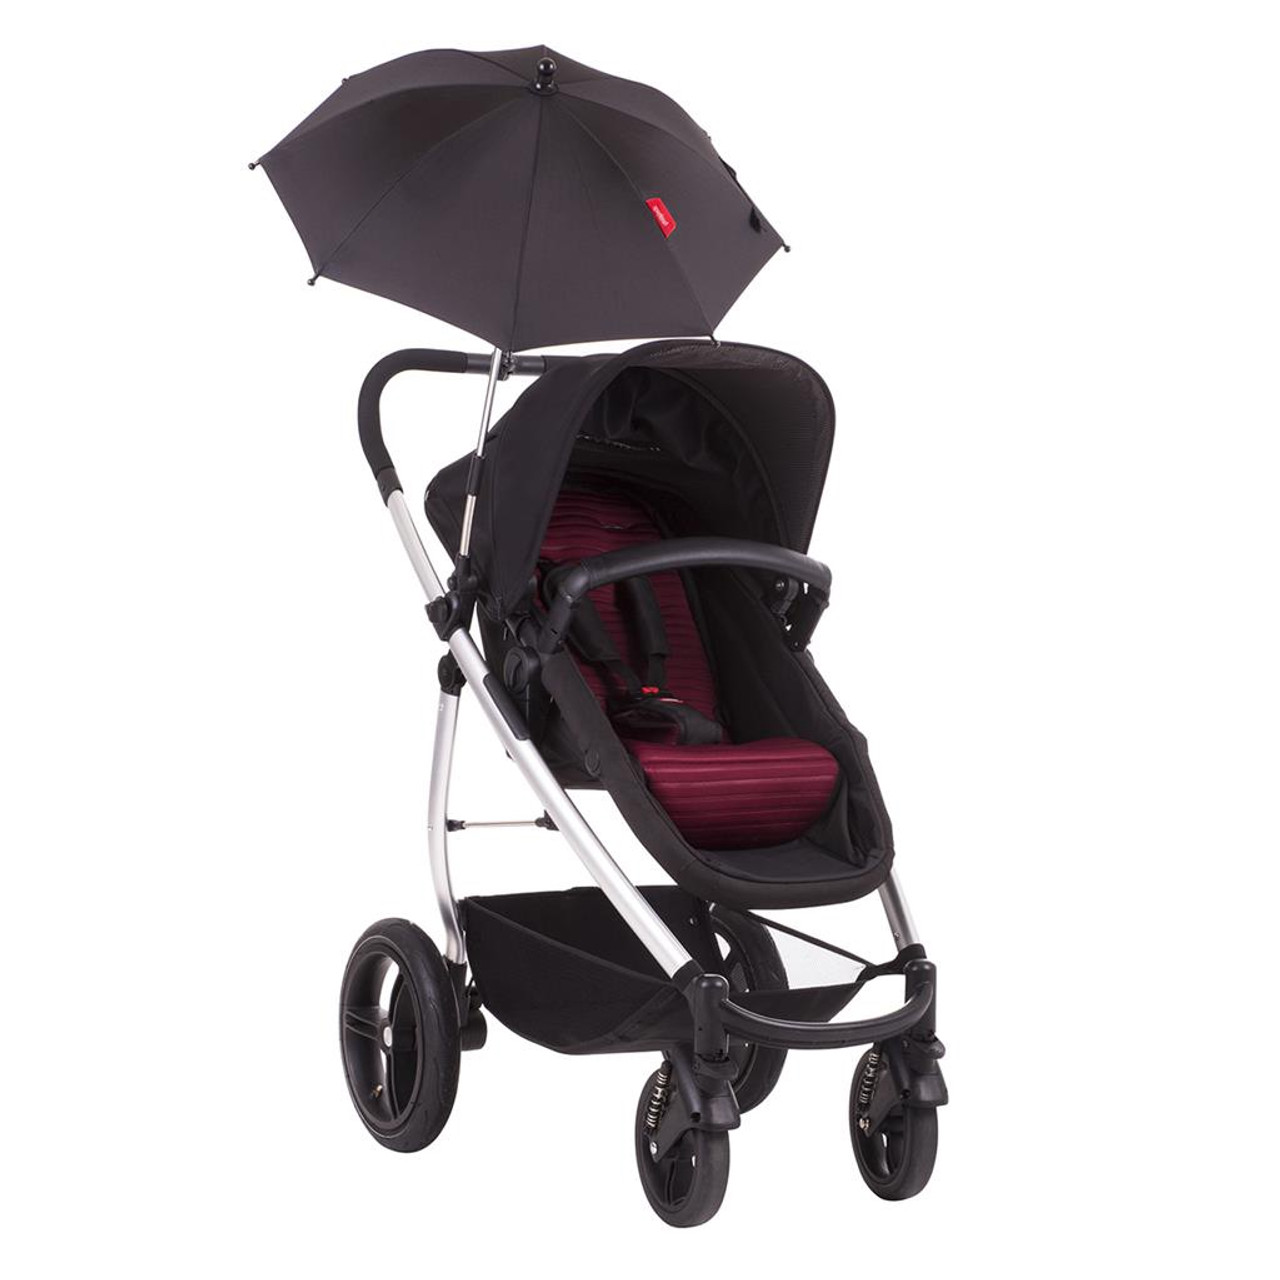 Phil & Teds Shade Stick Stroller Umbrella at Baby Barn Discounts parasol from Phil & Teds has a universal attachment compatible with any phil&teds stroller